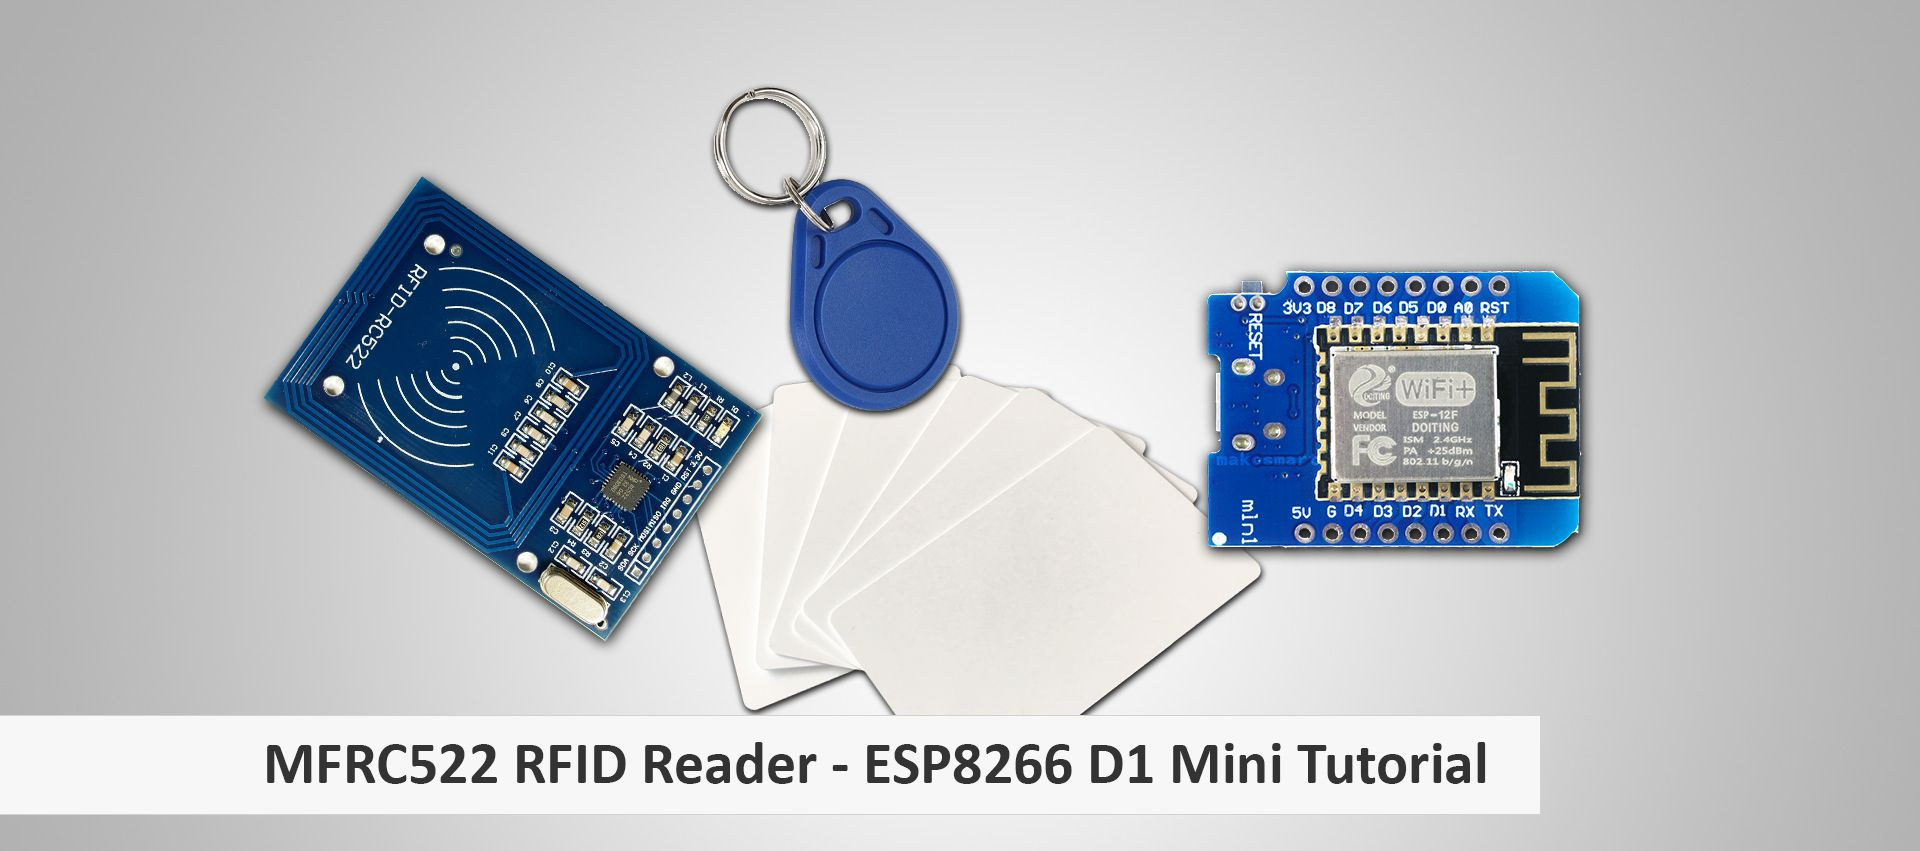 makesmart: MFRC522 RFID Reader am ESP8266 D1 Mini